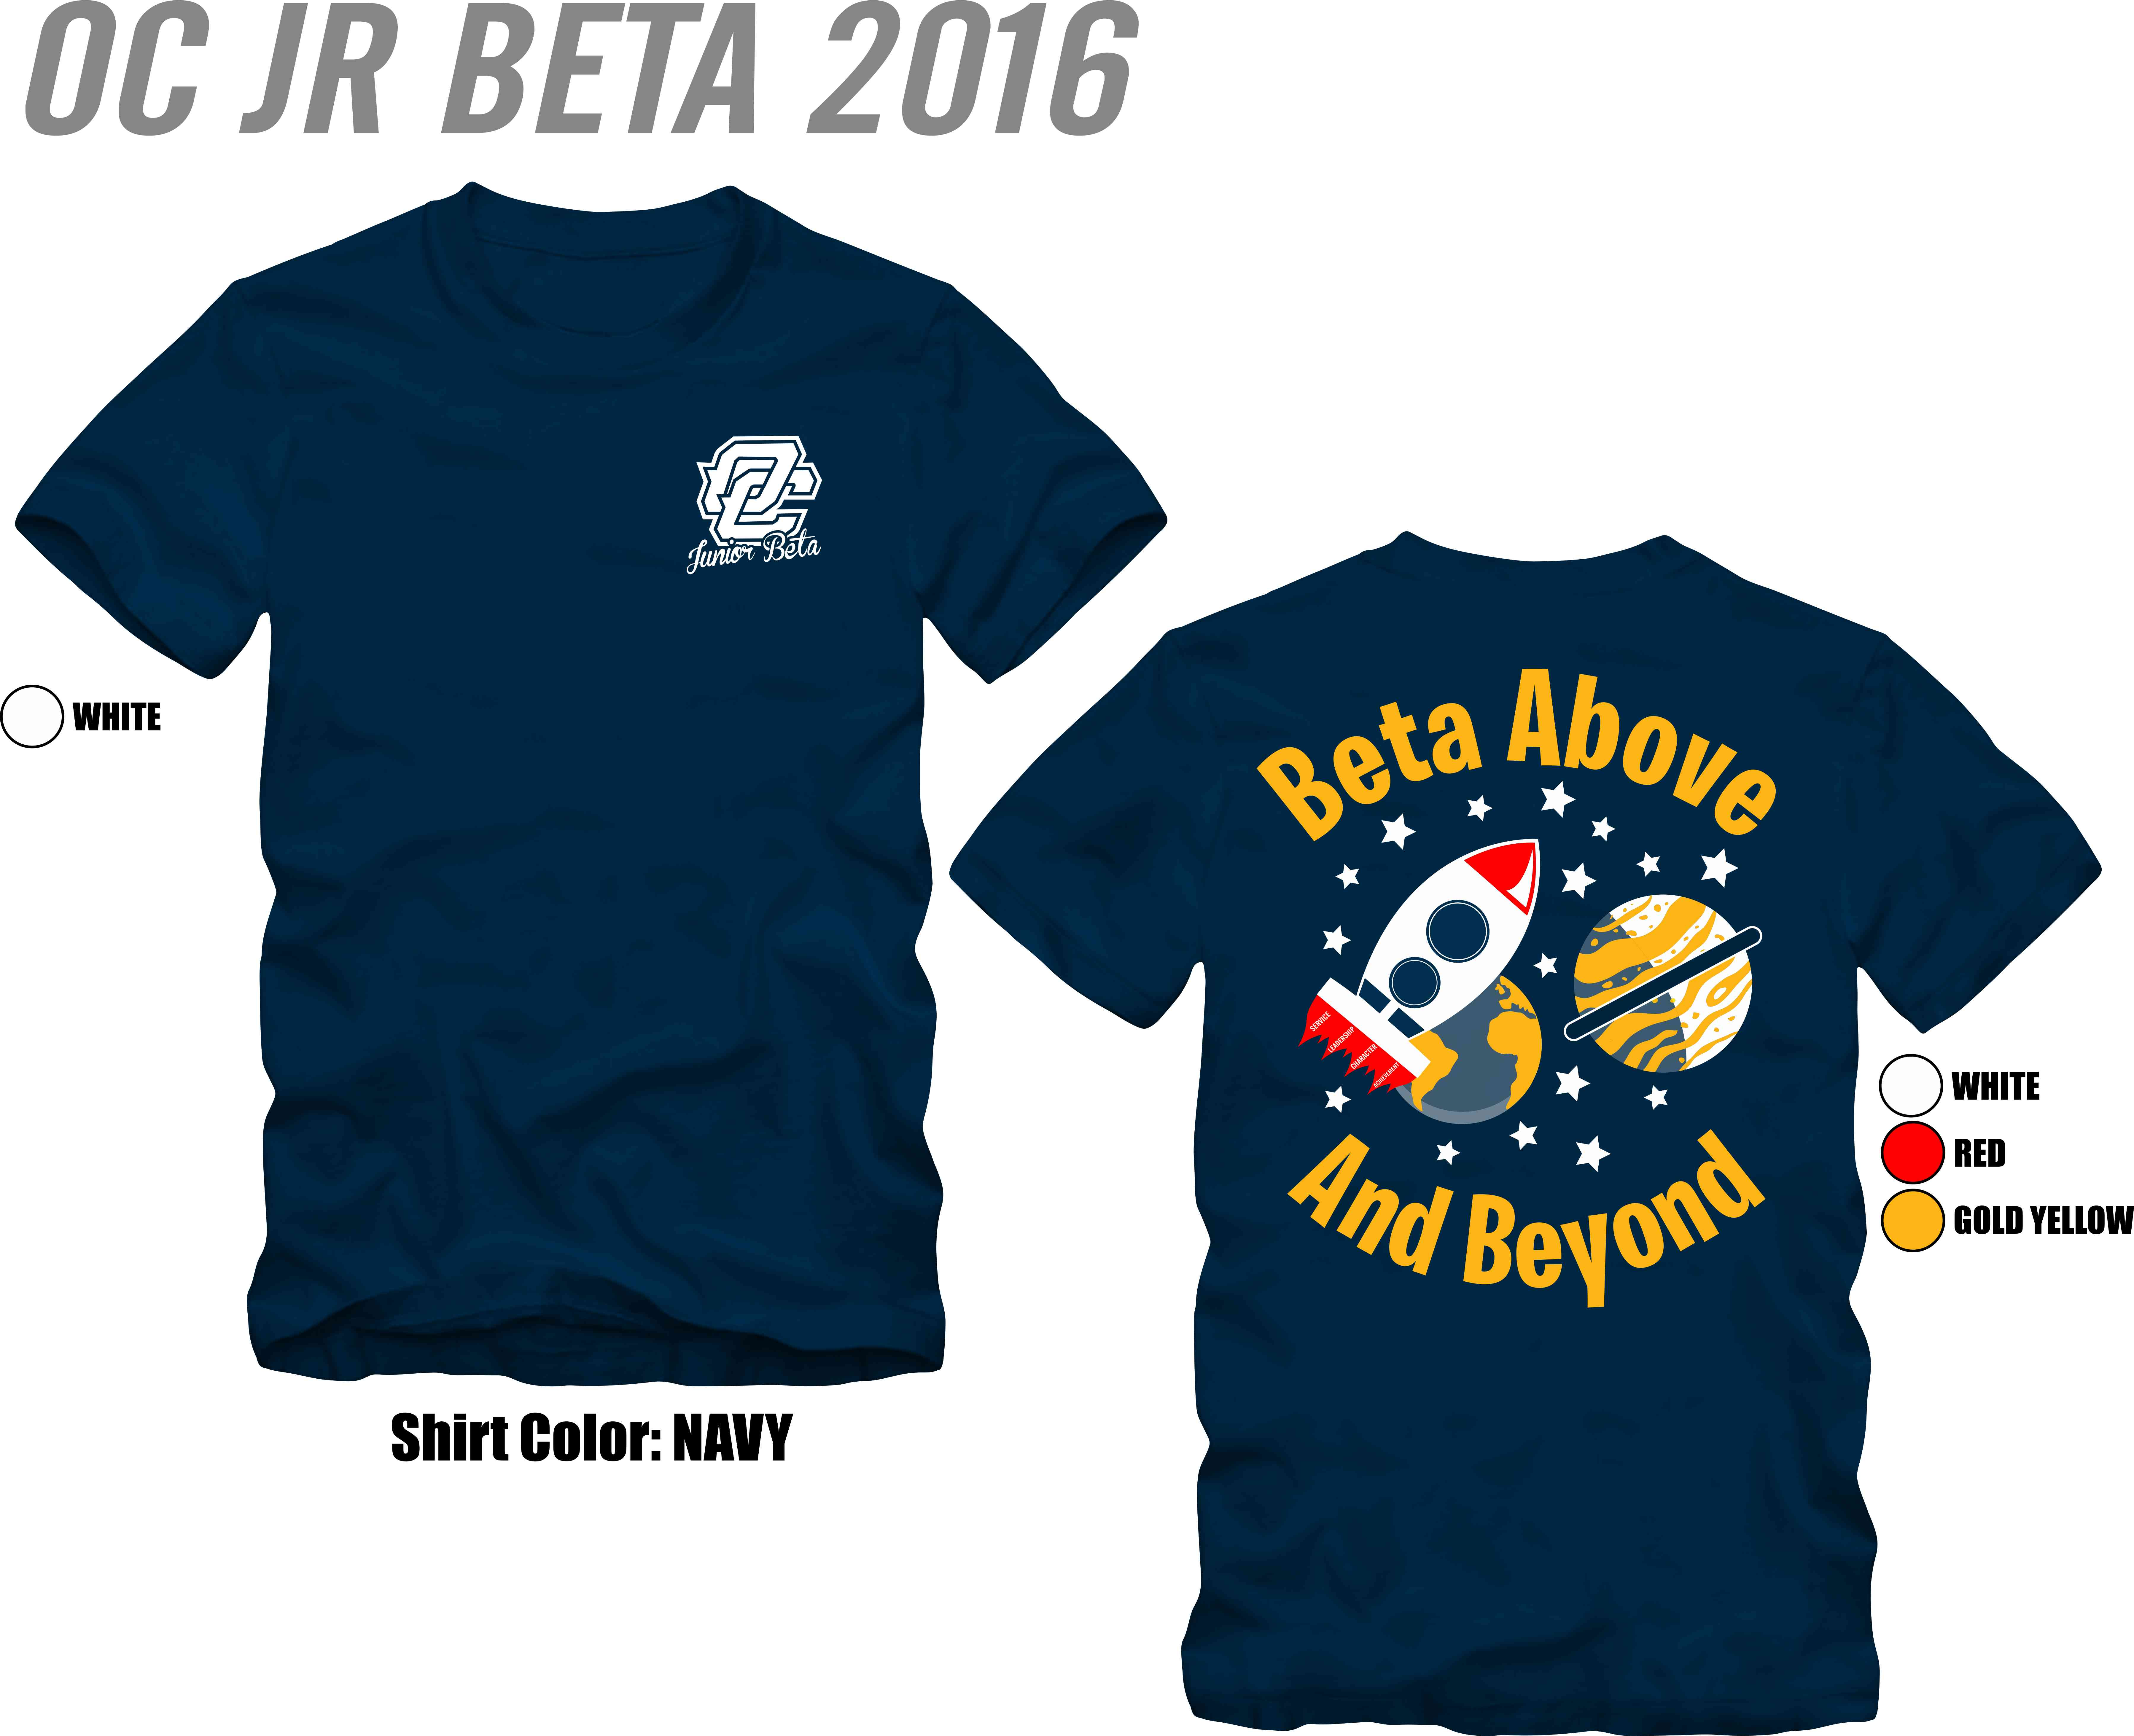 OC JR BETA 2016